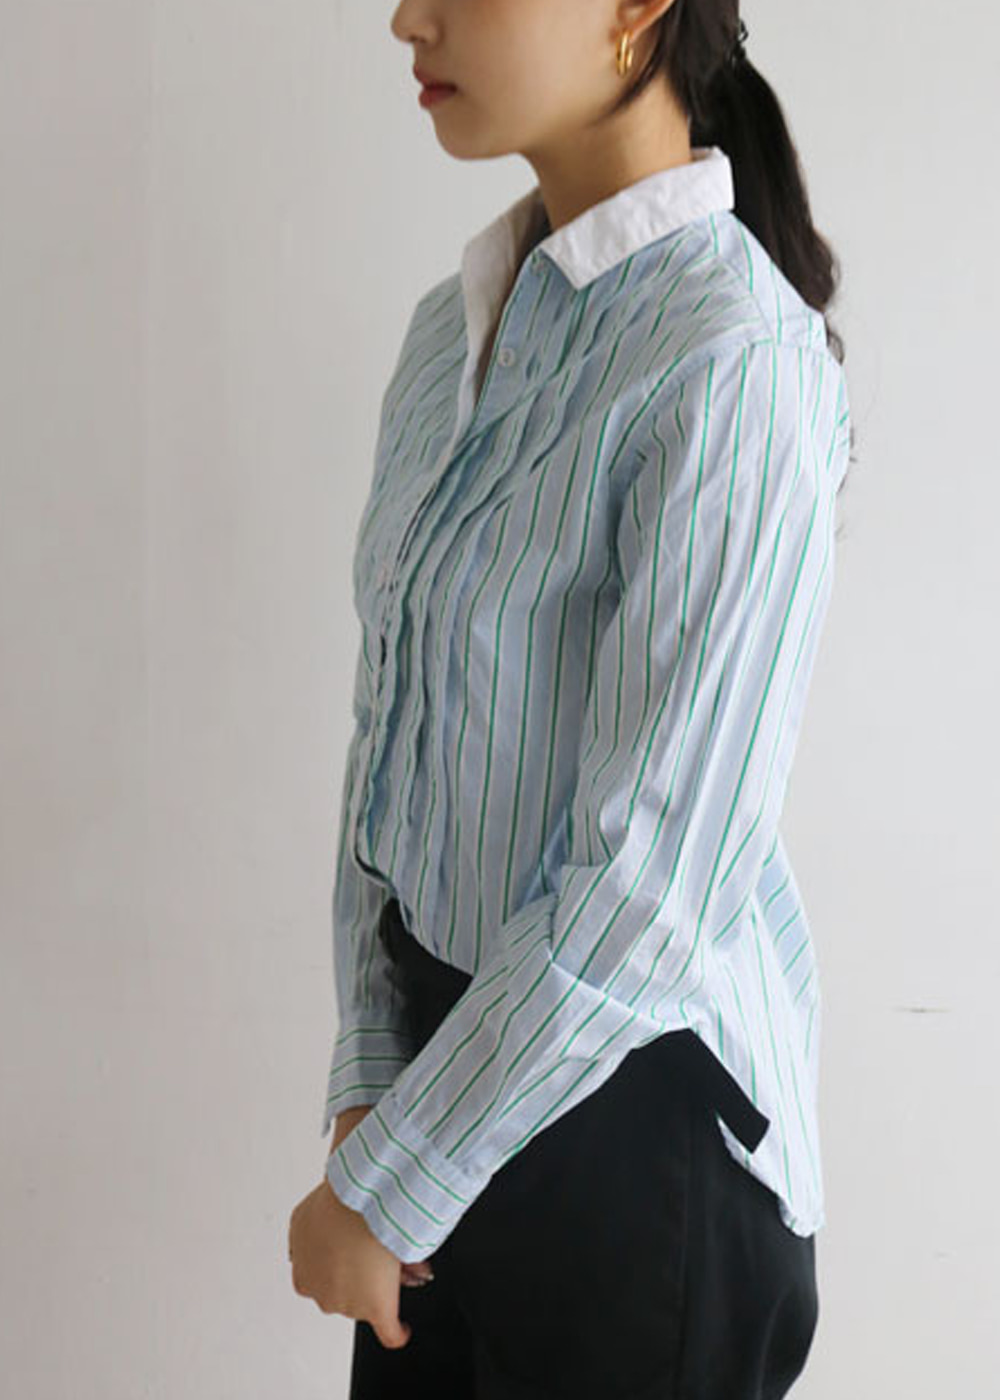 MEN'S SHIRTING CLERIC SHIRT